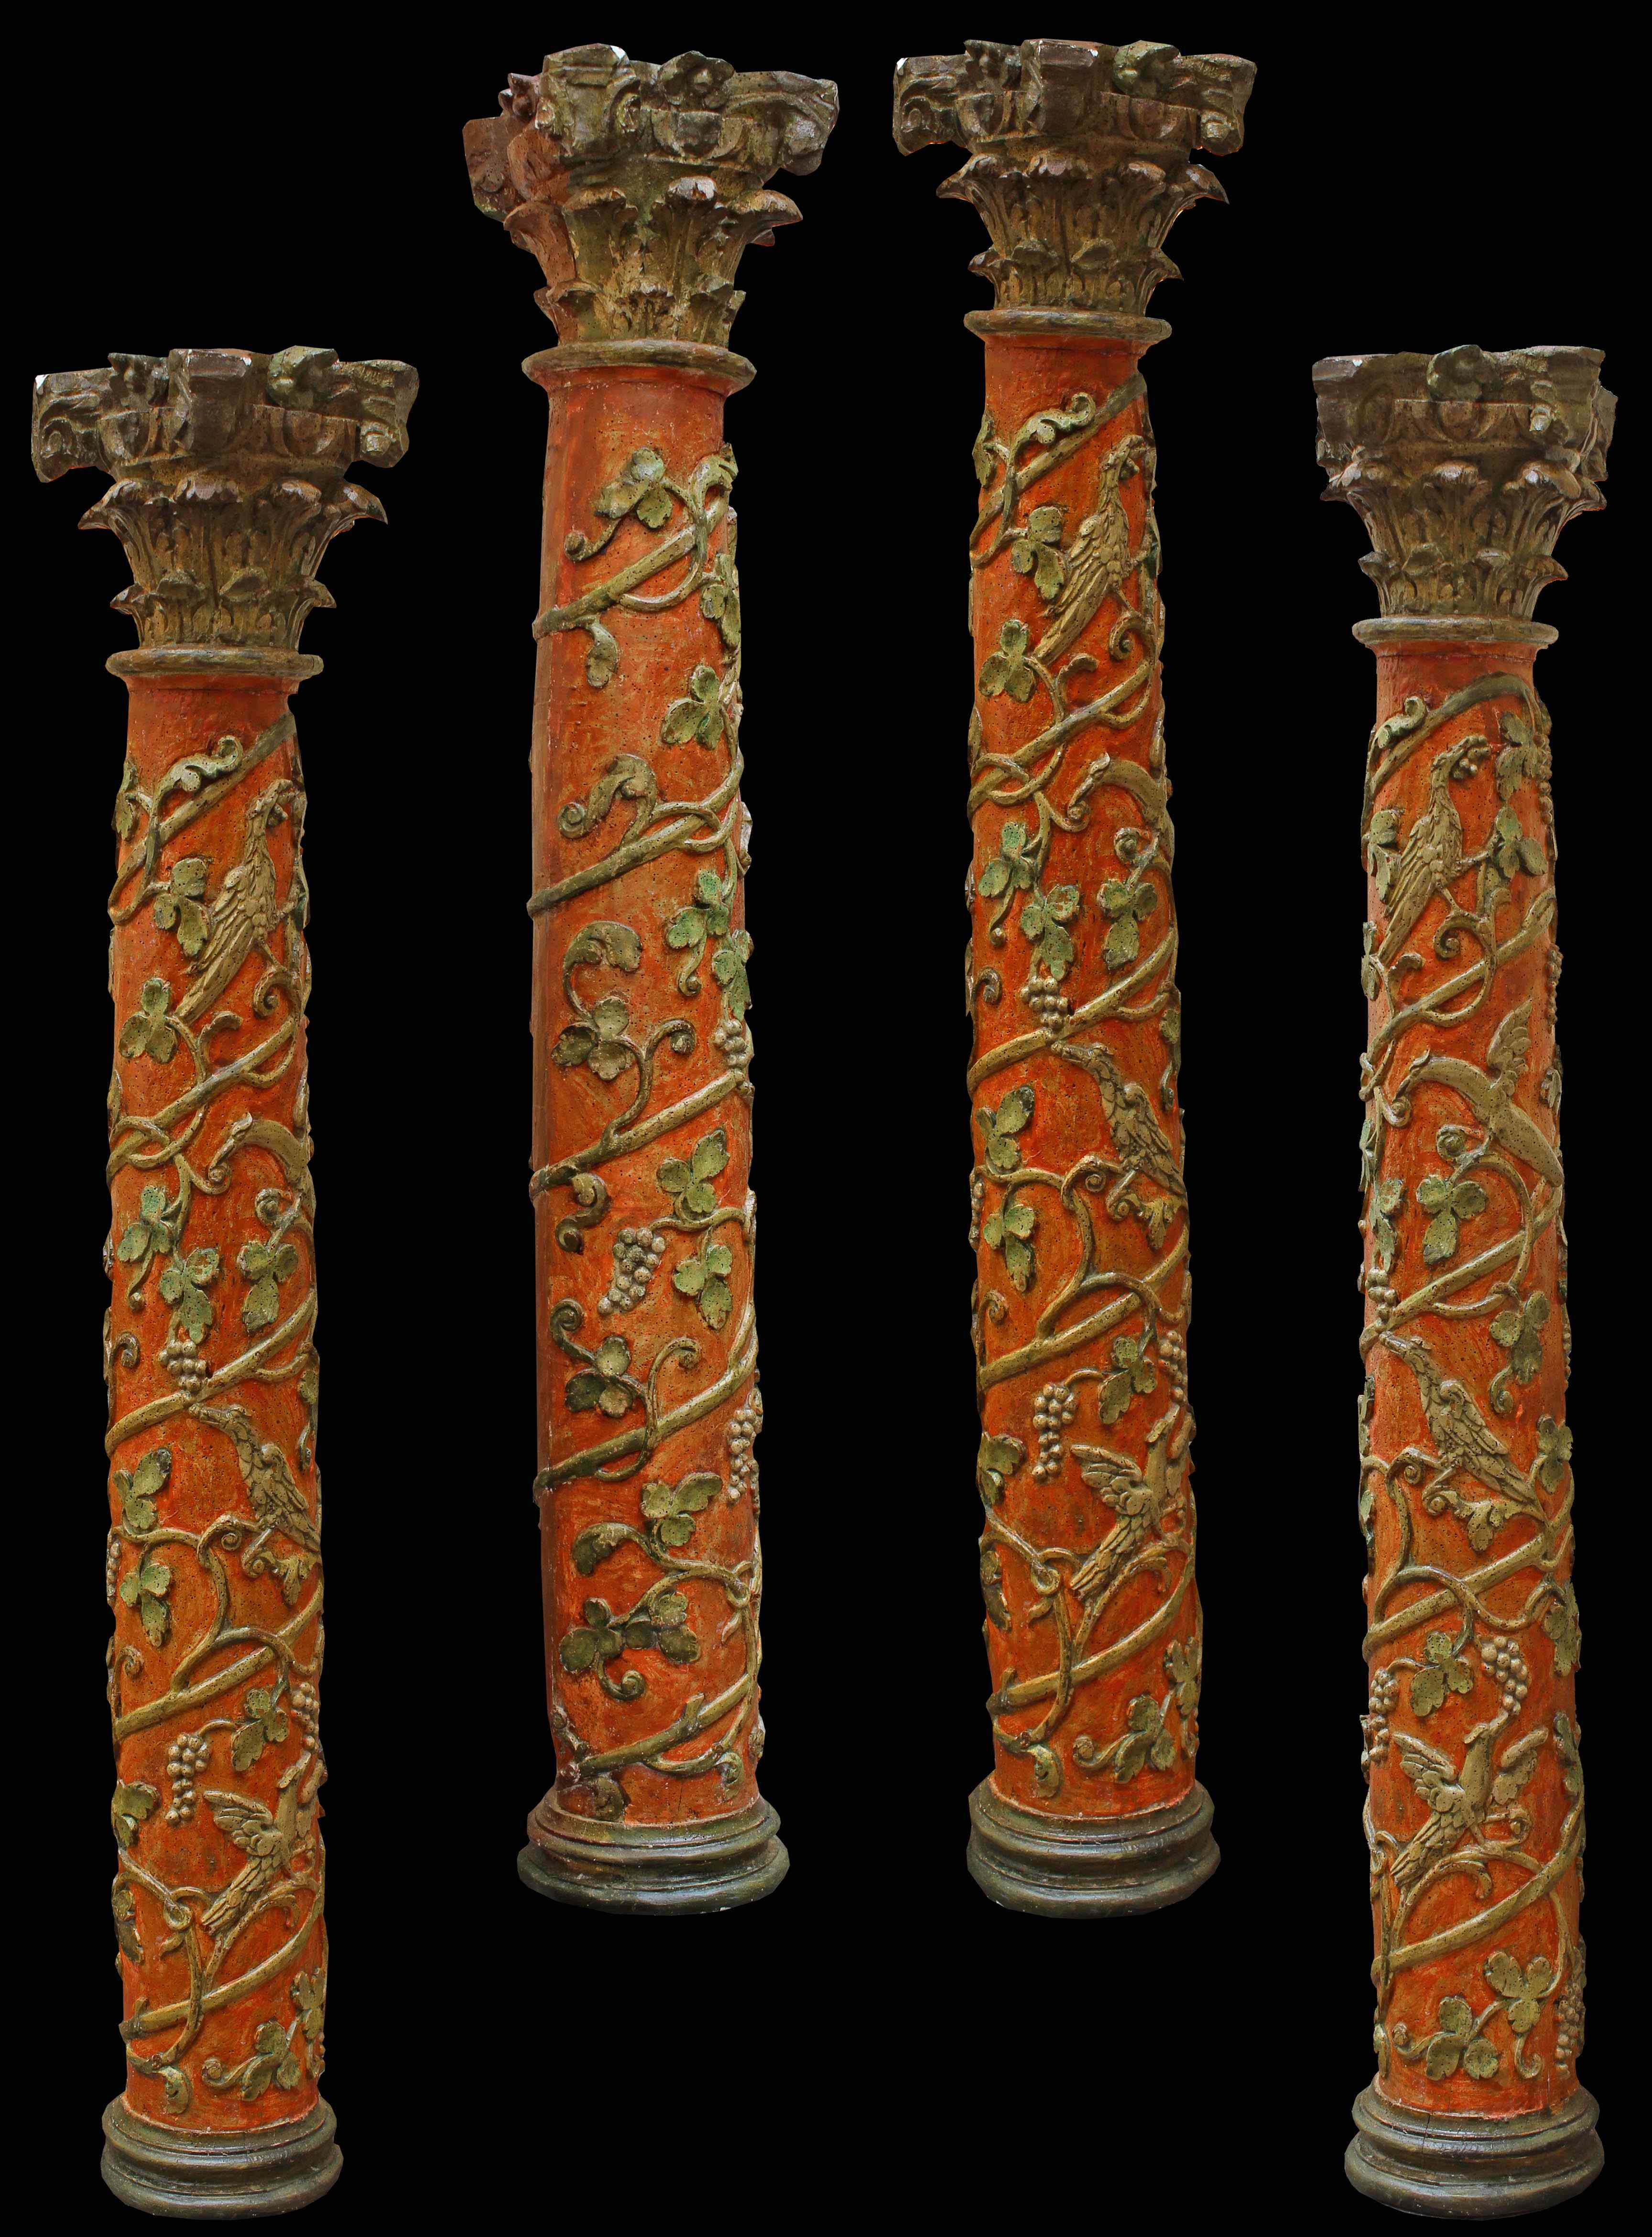 Early 17th century, columns, (4) polychrome and golden wood